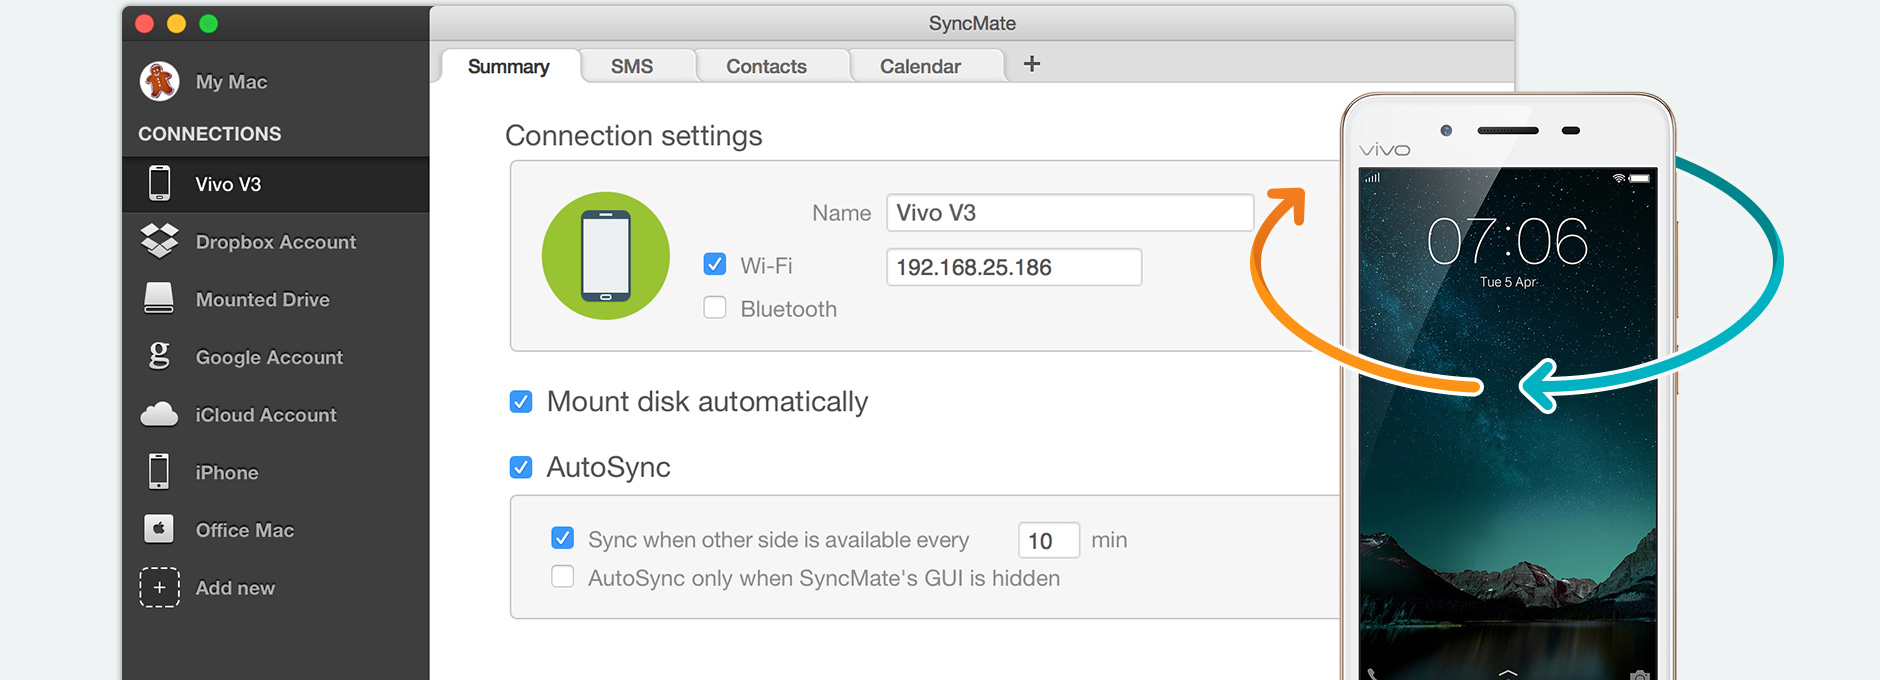 Synchronize Vivo Mac: sync Vivo phone and Mac using SyncMate